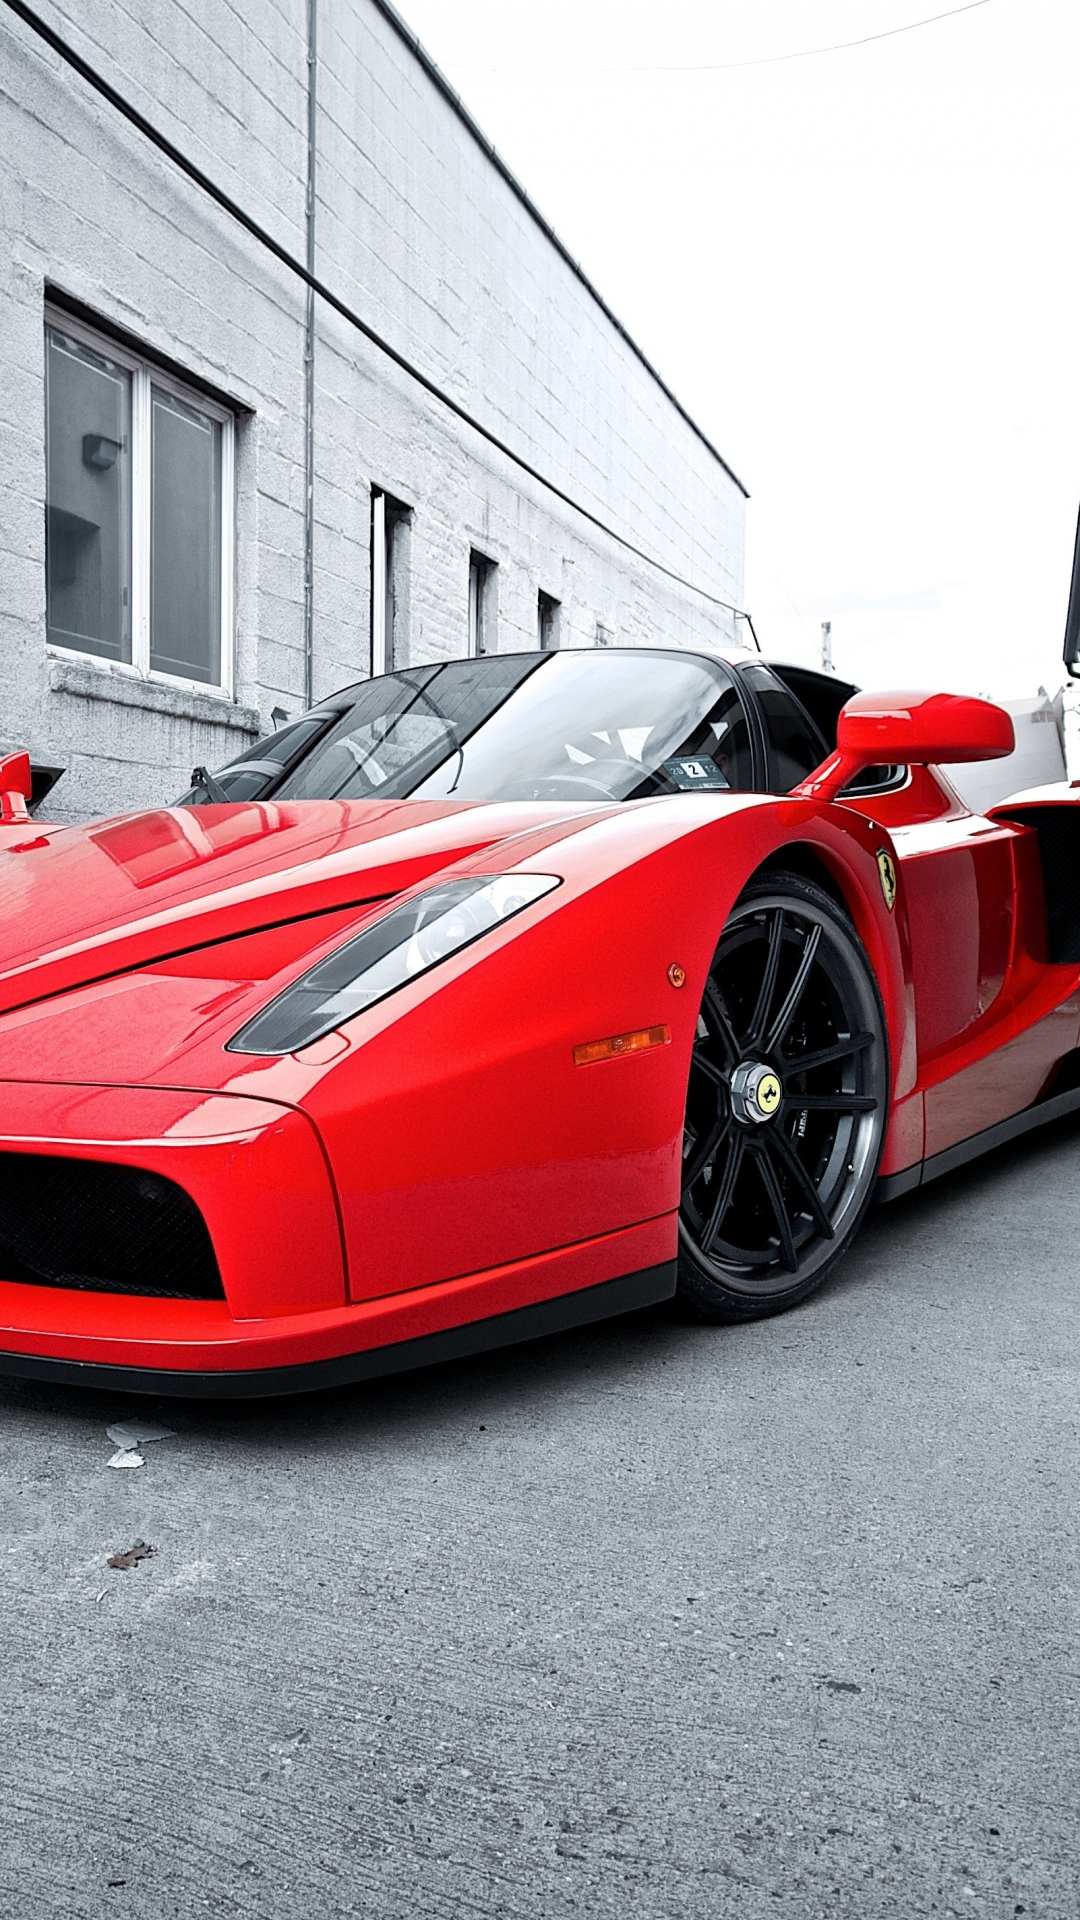 Red Ferrari Enzo Best Htc One Wallpapers Free And Easy